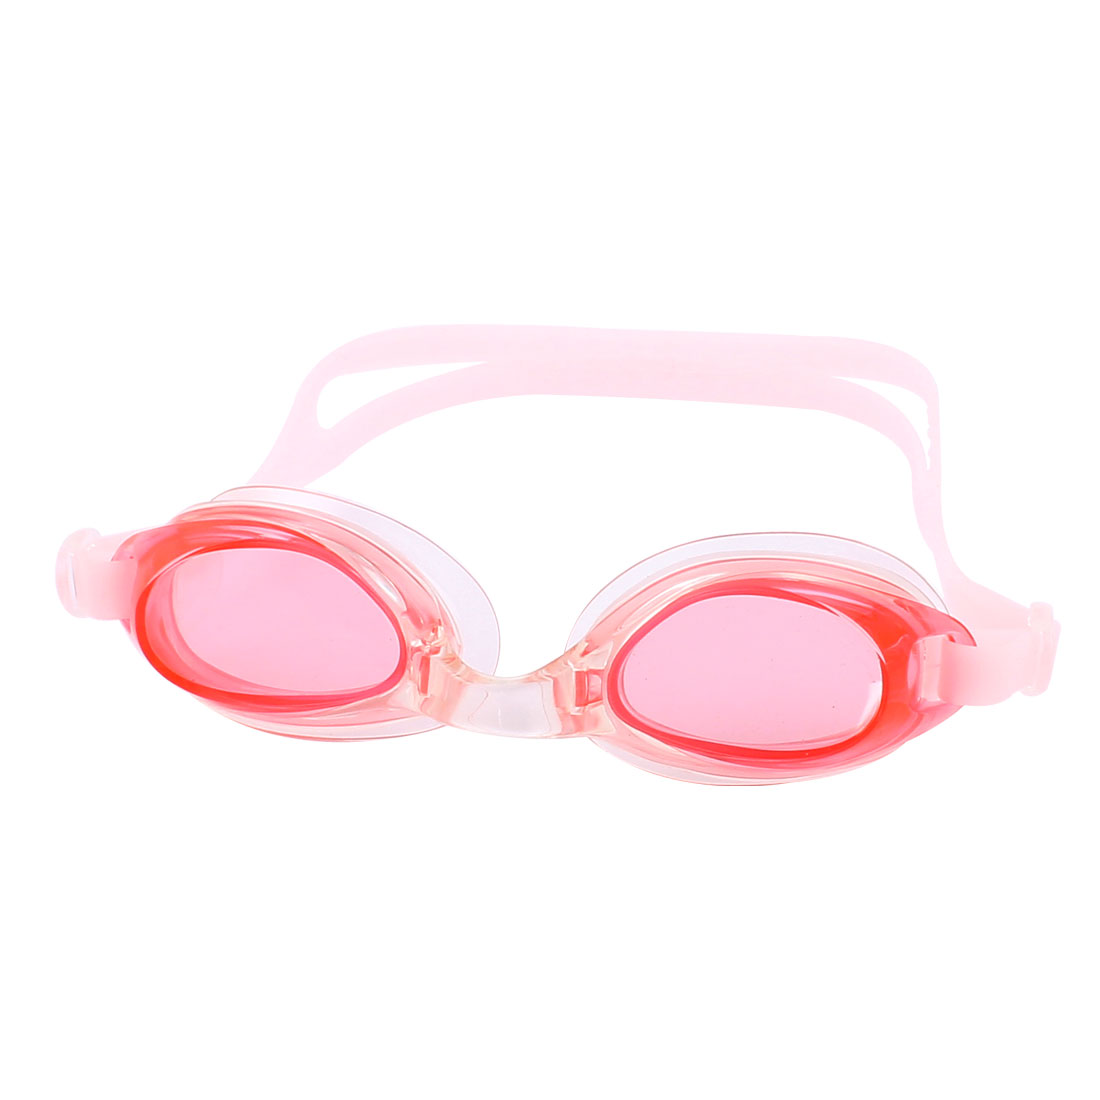 Adults Stretchy Adjustable Strap Swimming Eyeglasses Goggles Pink Red